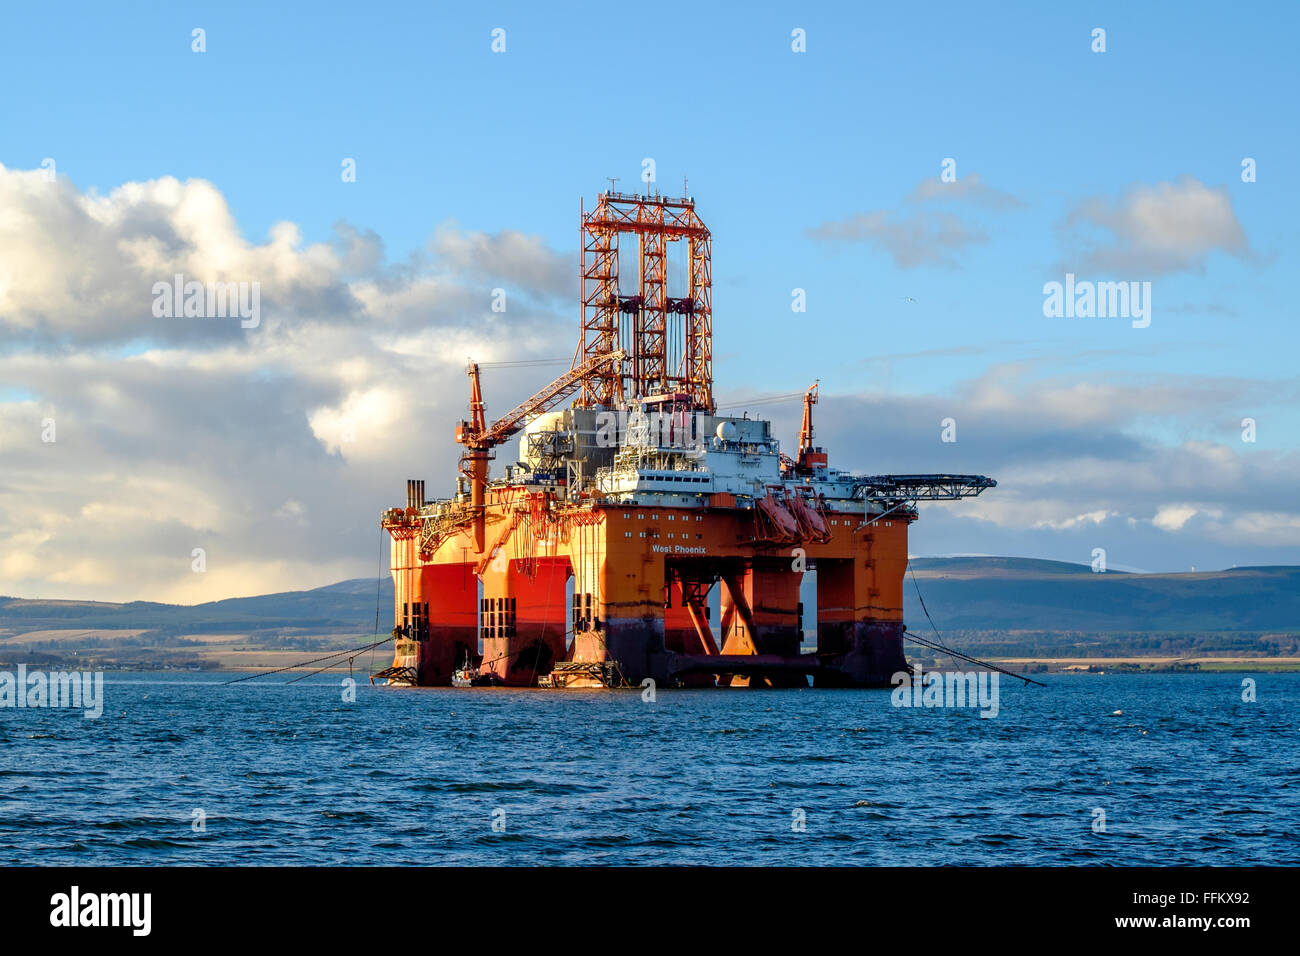 Oil Rig Stock Photos & Oil Rig Stock Images - Alamy